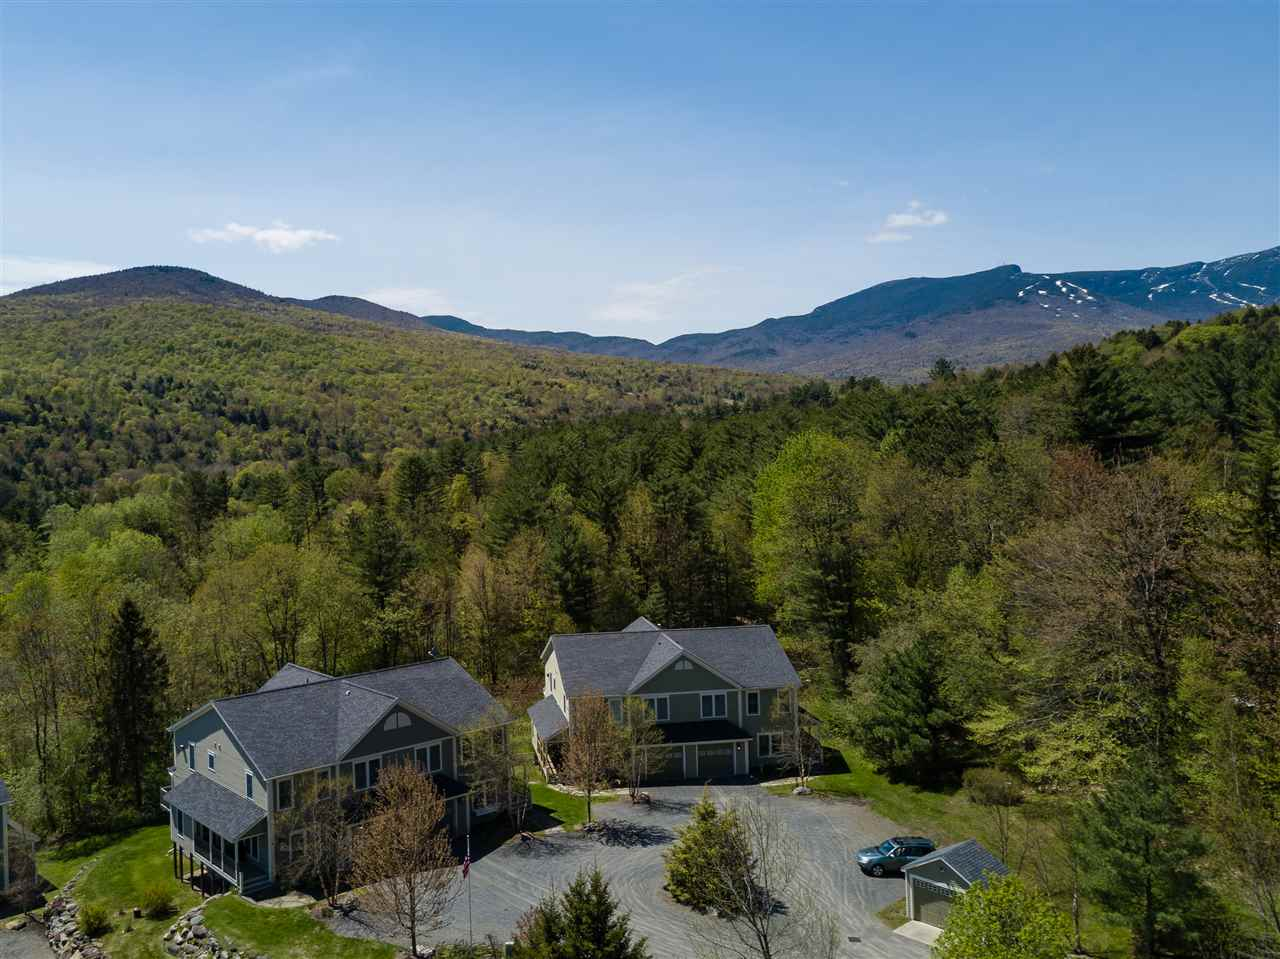 Photo of 149 Edson Hill Road Stowe VT 05672